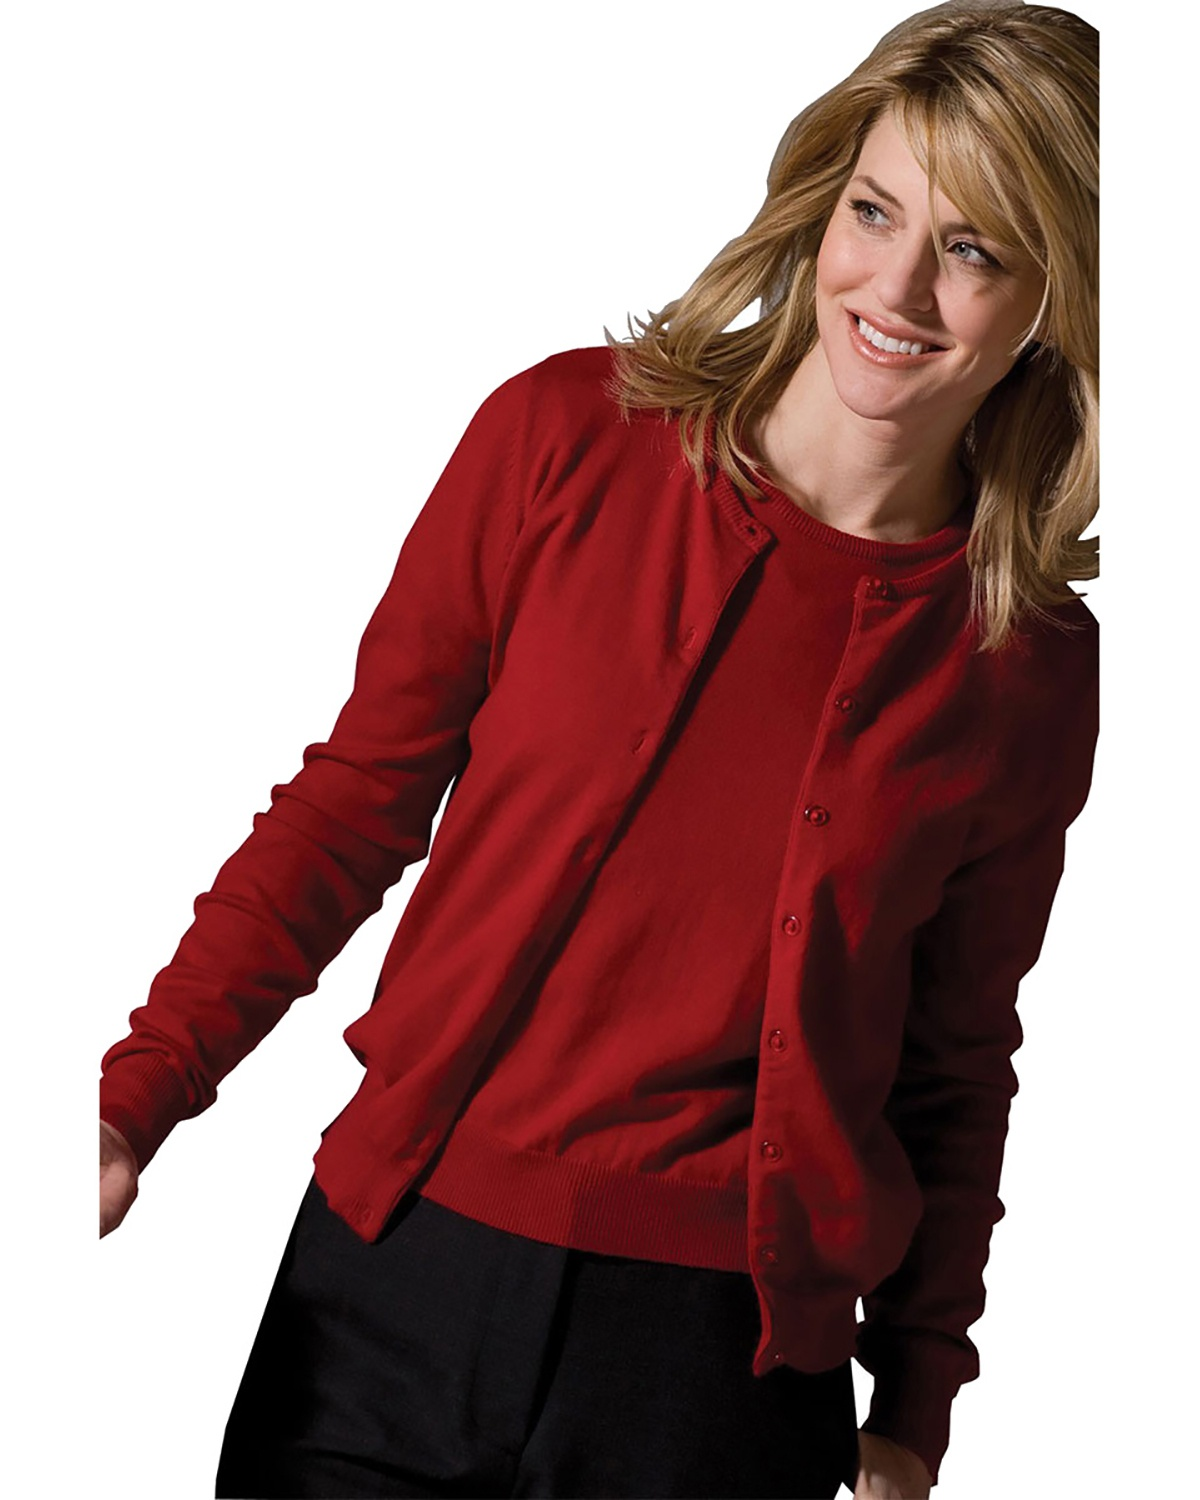 'Edwards 038 Ladies' Corporate Performance Twinset Sweater'